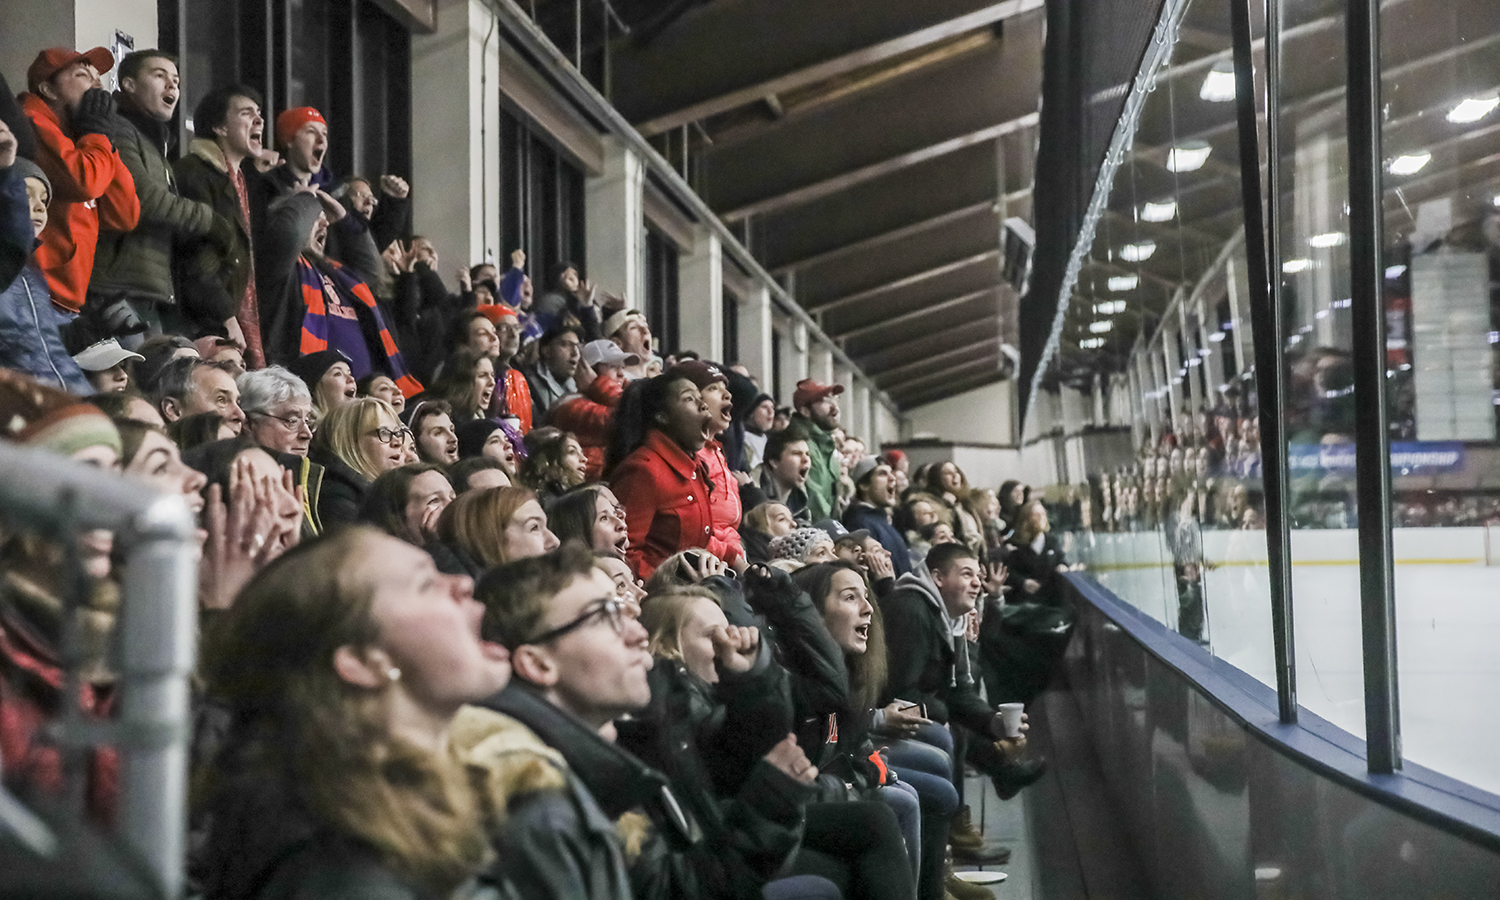 HWS students cheer on the Statesmen Ice Hockey team during the first-round of the NCAA Division III Ice Hockey Tournament at The Cooler in Geneva, N.Y.